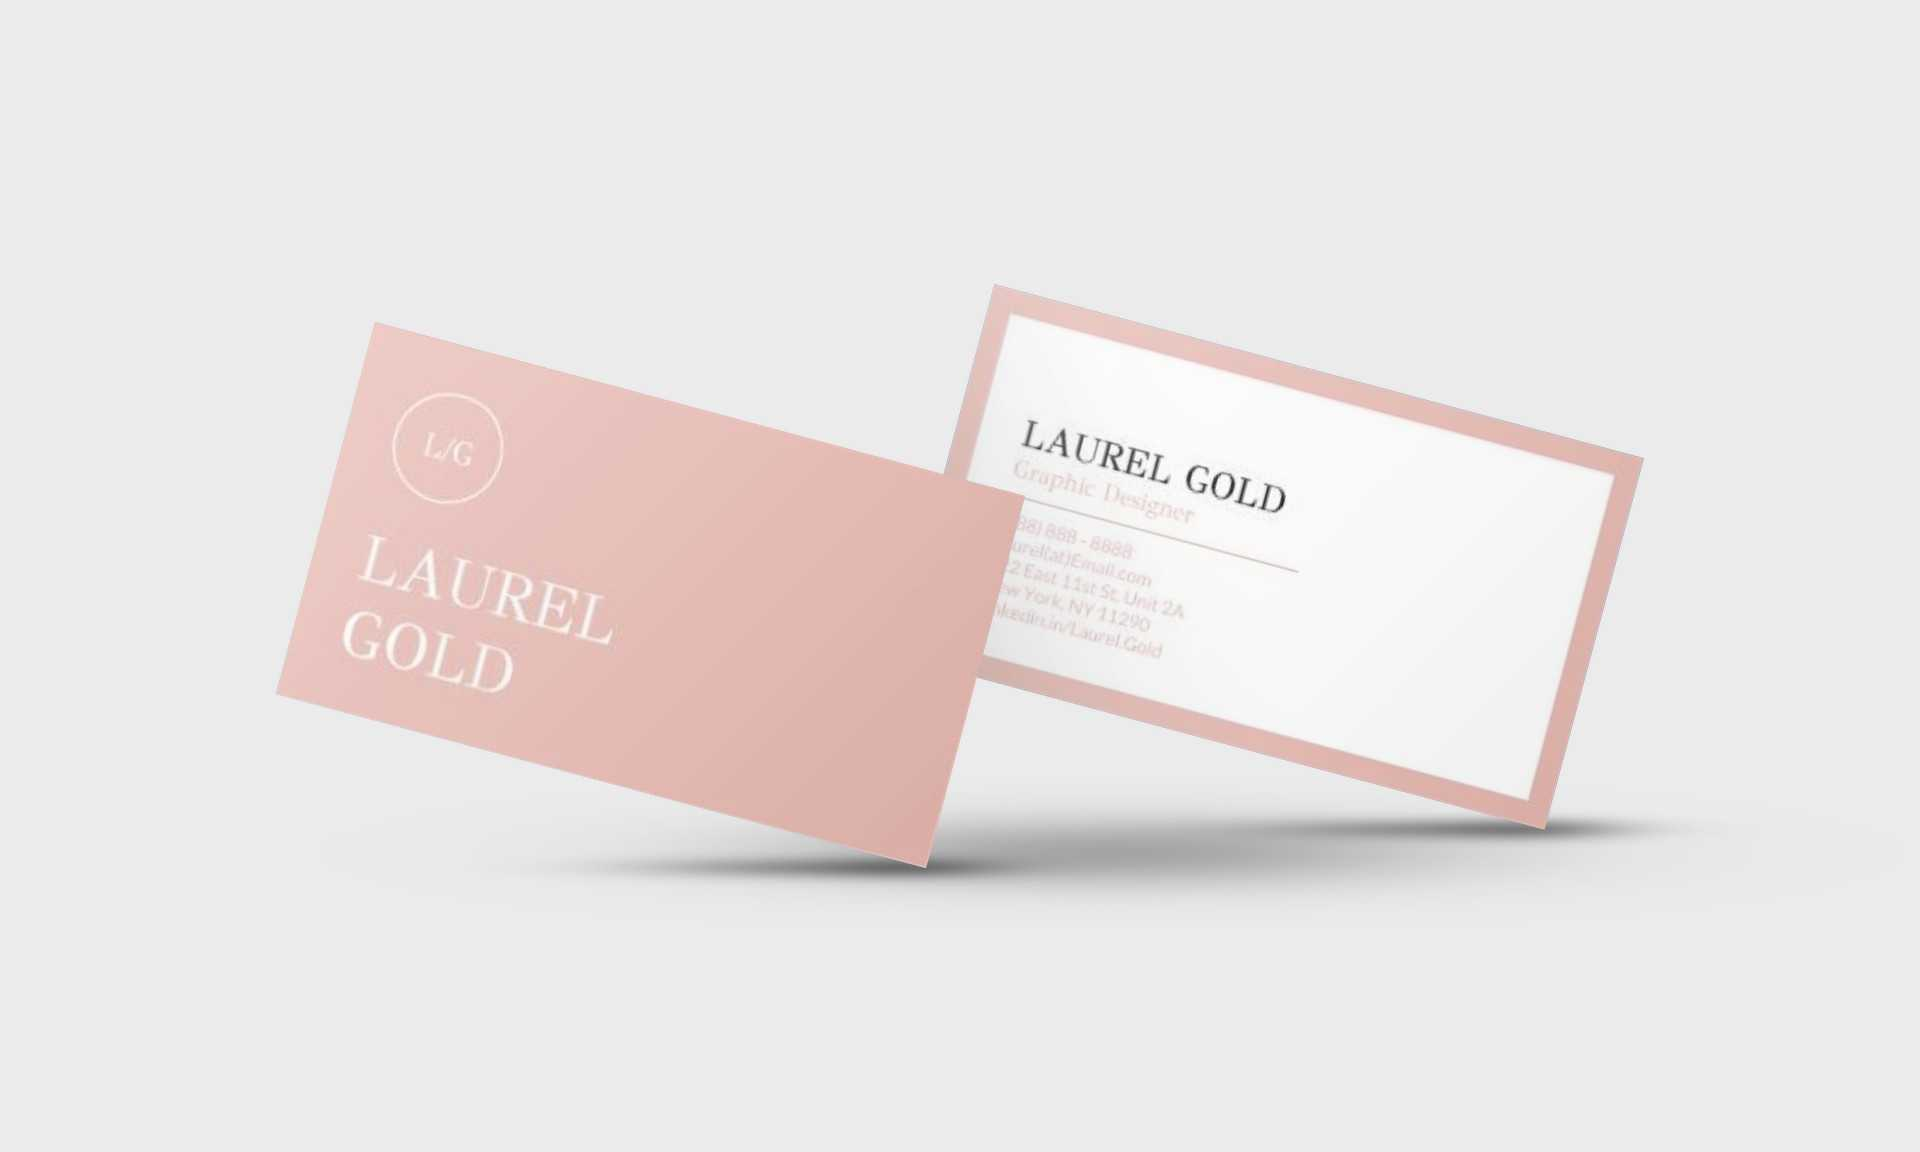 Laurel Gold Google Docs Business Card Template - Stand Out Shop Inside Google Docs Business Card Template